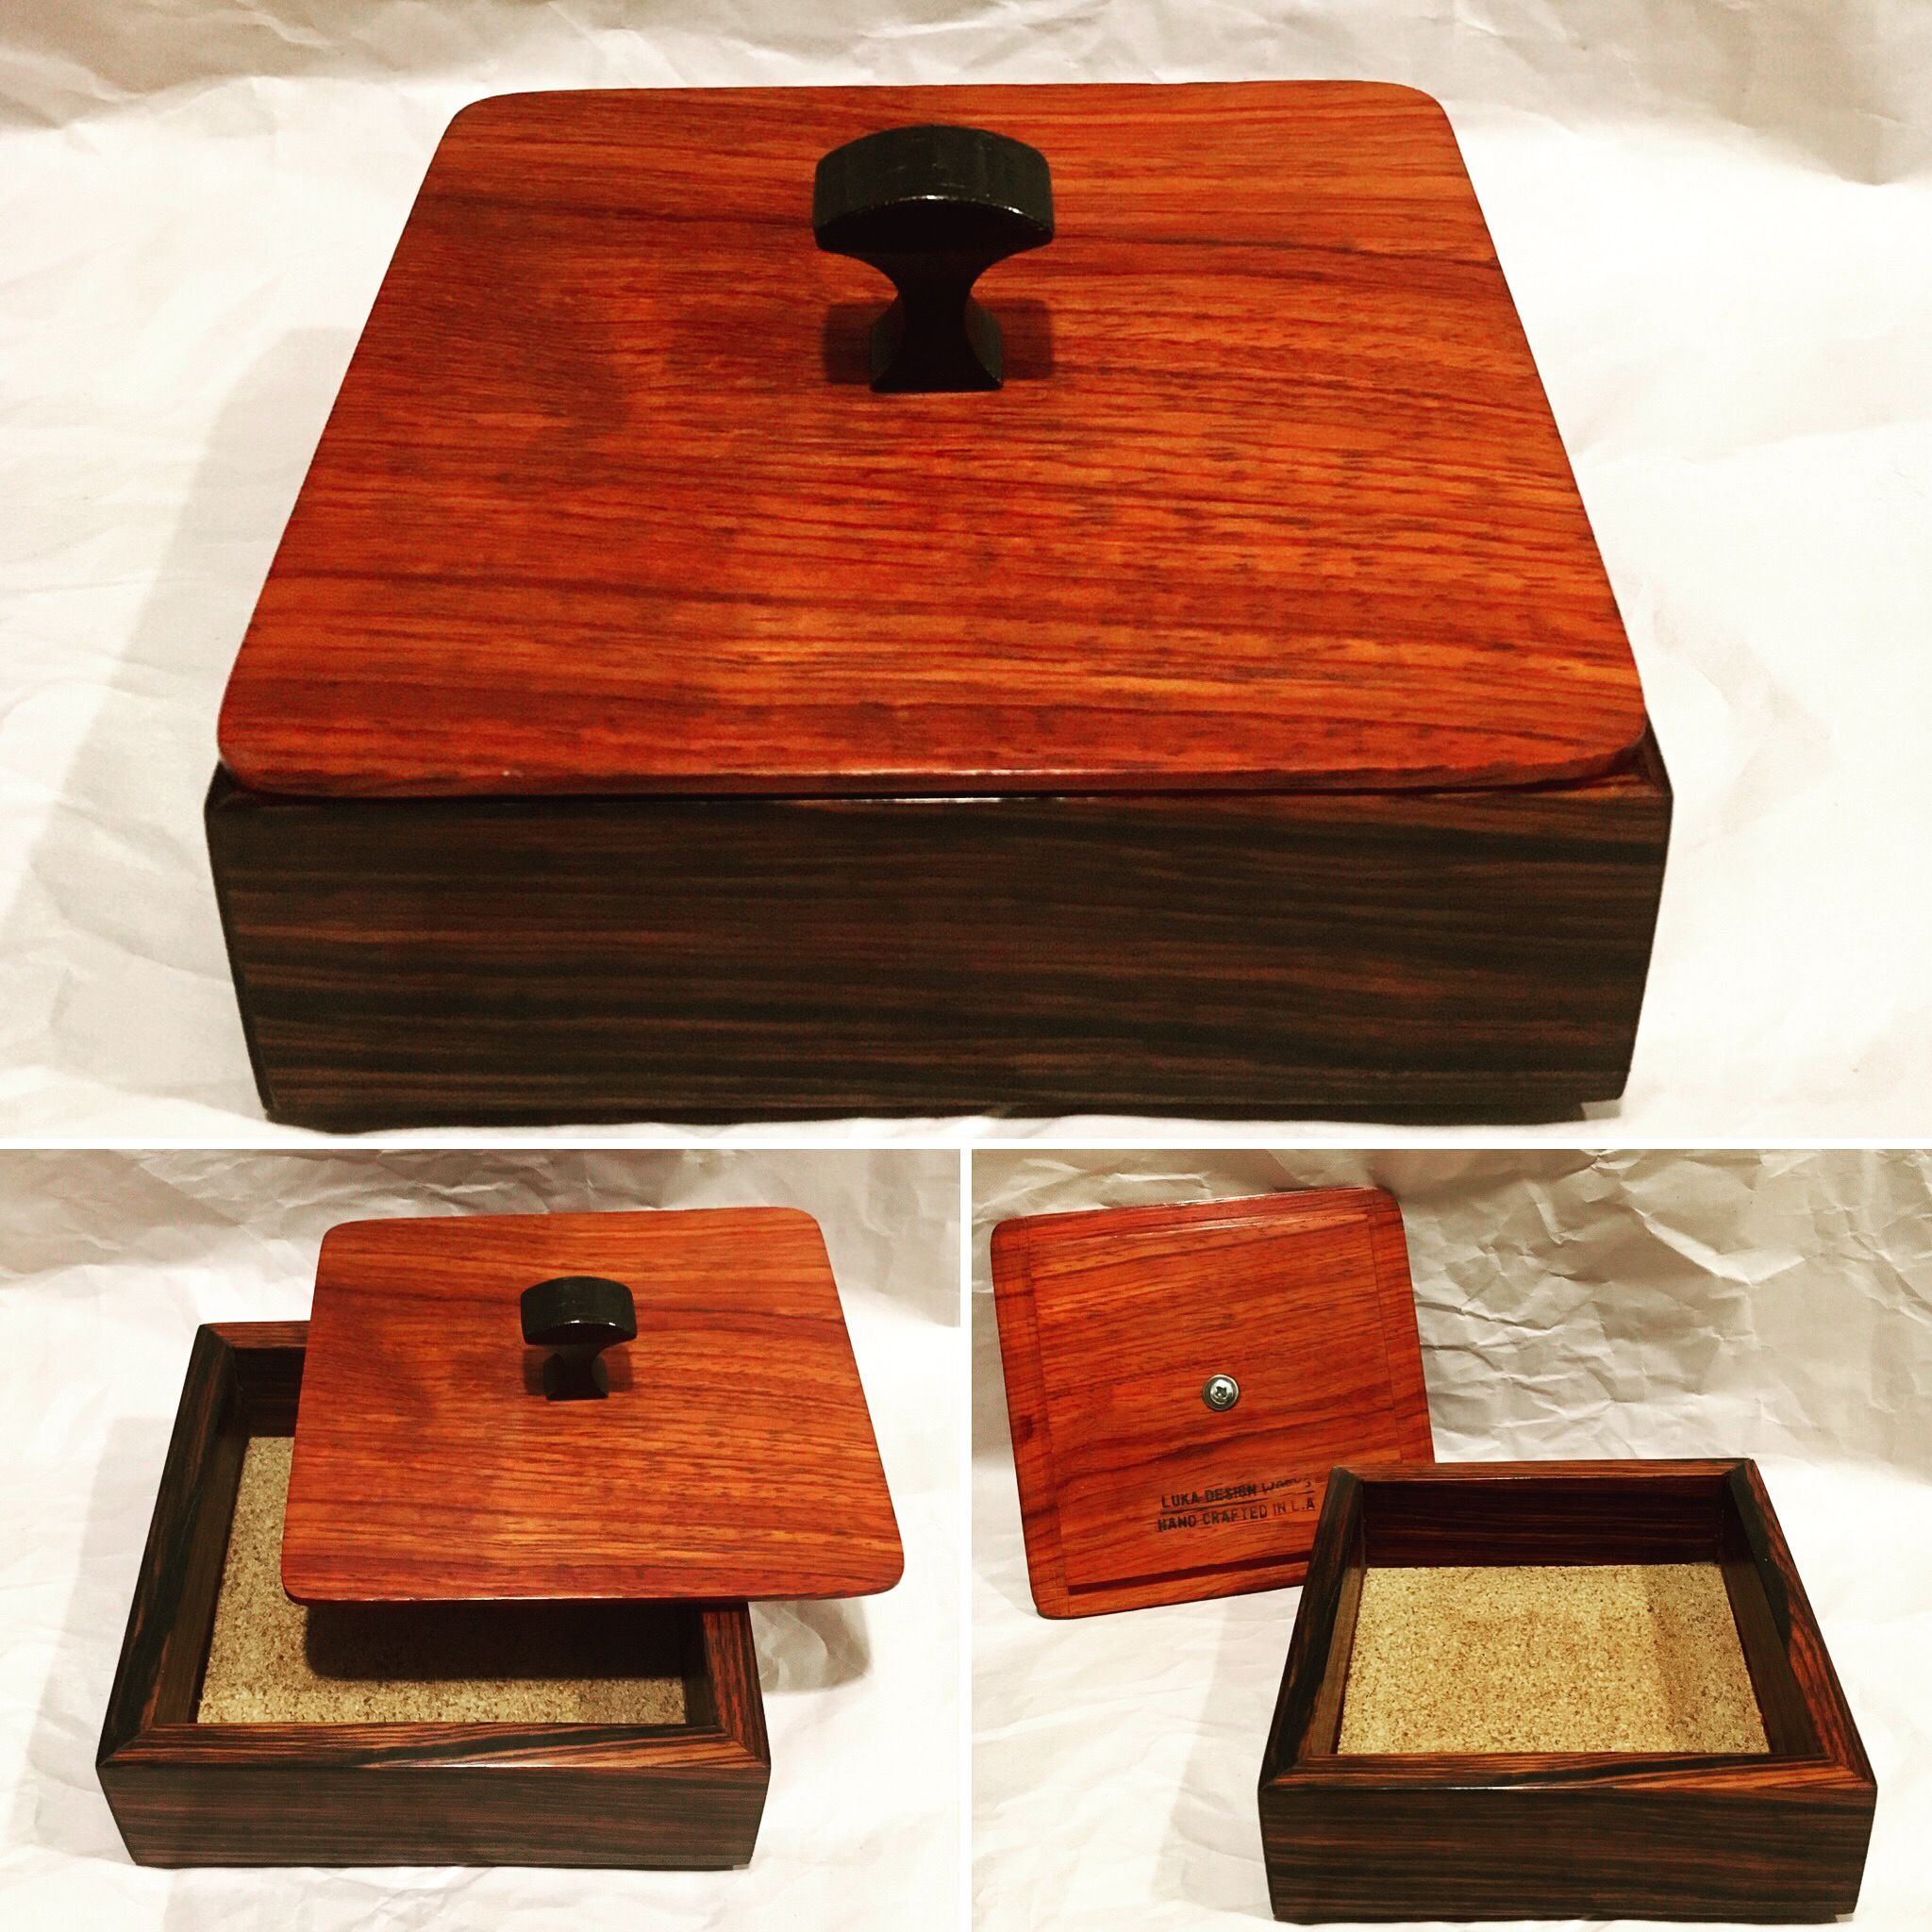 Keepsake Box Made Of Coco Bolo And The Top And Bottom Are